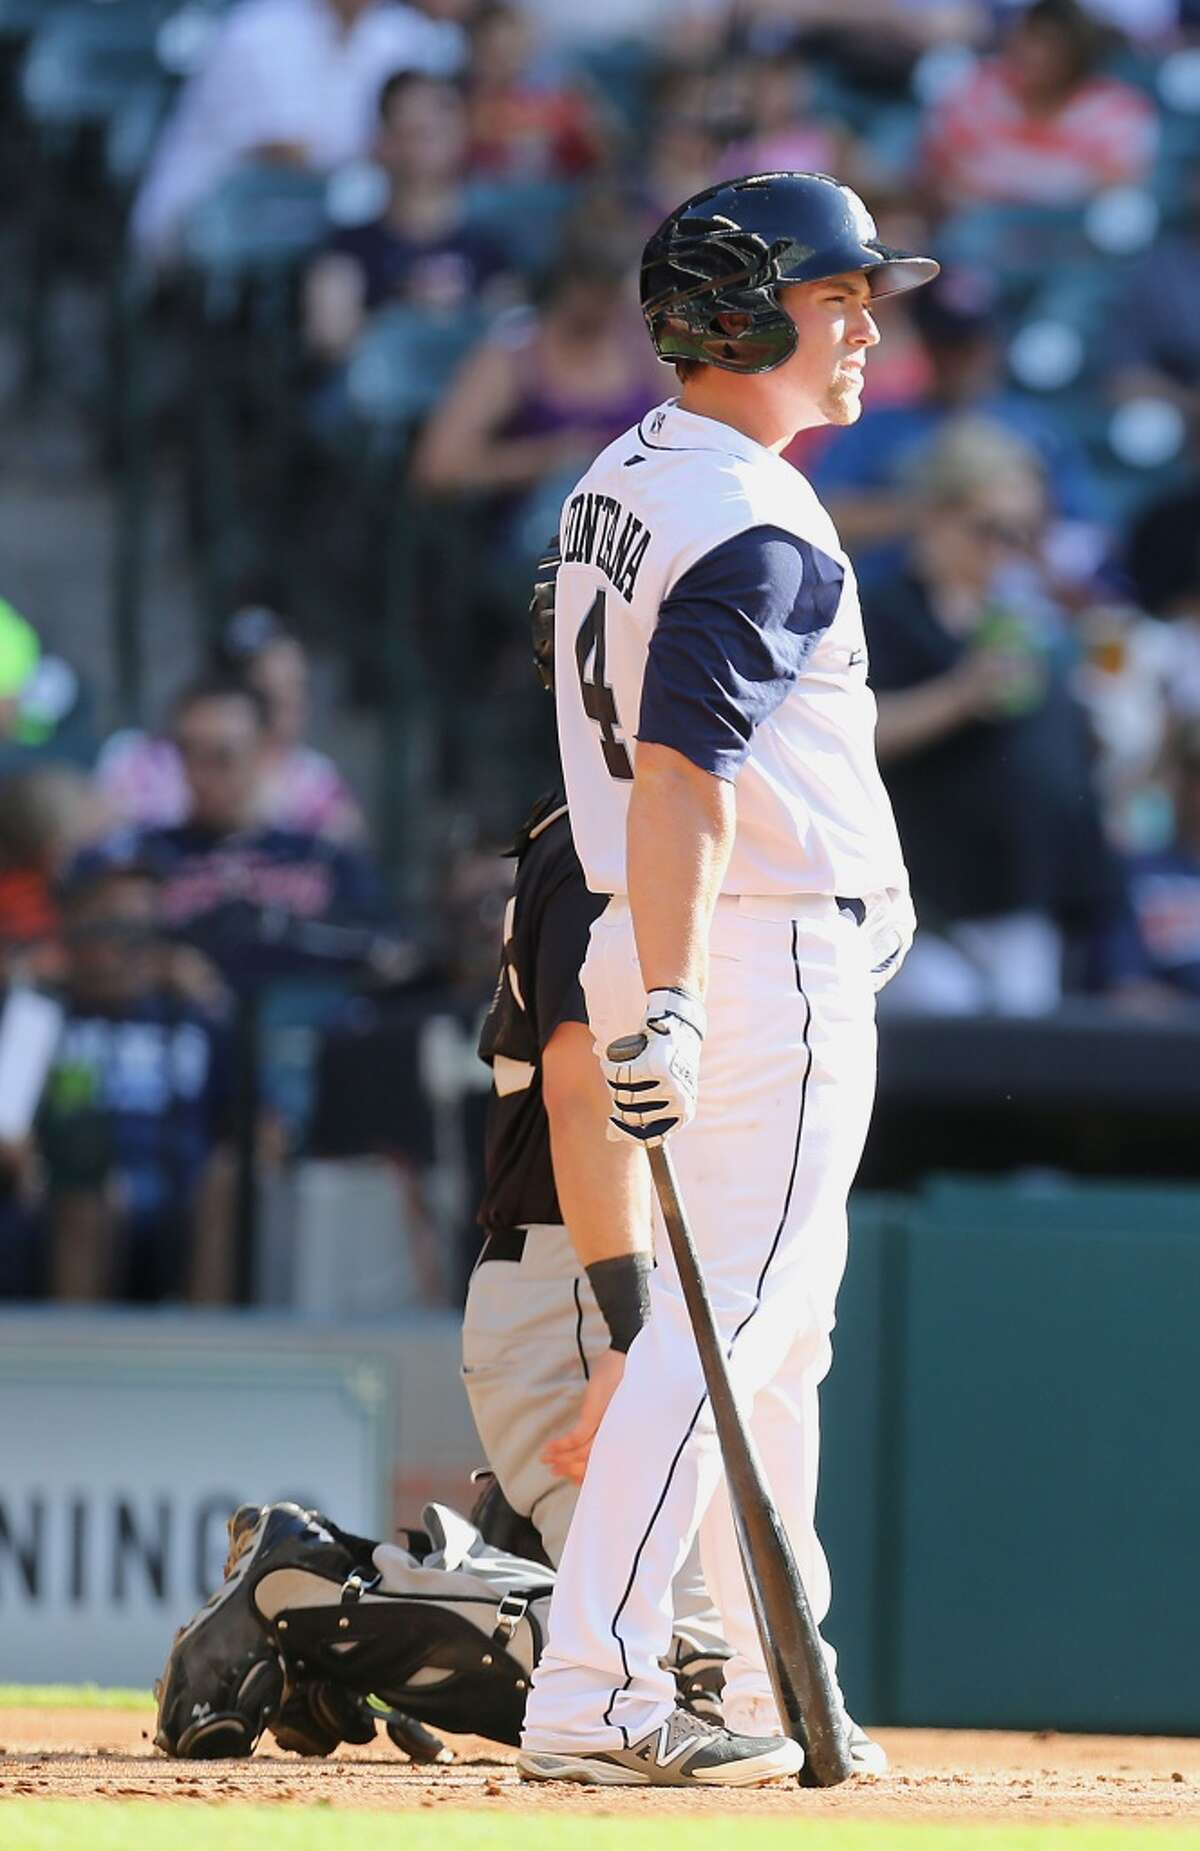 Corpus Christi Hooks Nolan Fontana stands in the batters box during the first inning of the Minor League Baseball game against the San Antonio Missions at Minute Maid Park Tuesday, June 10, 2014, in Houston. ( James Nielsen / Houston Chronicle )